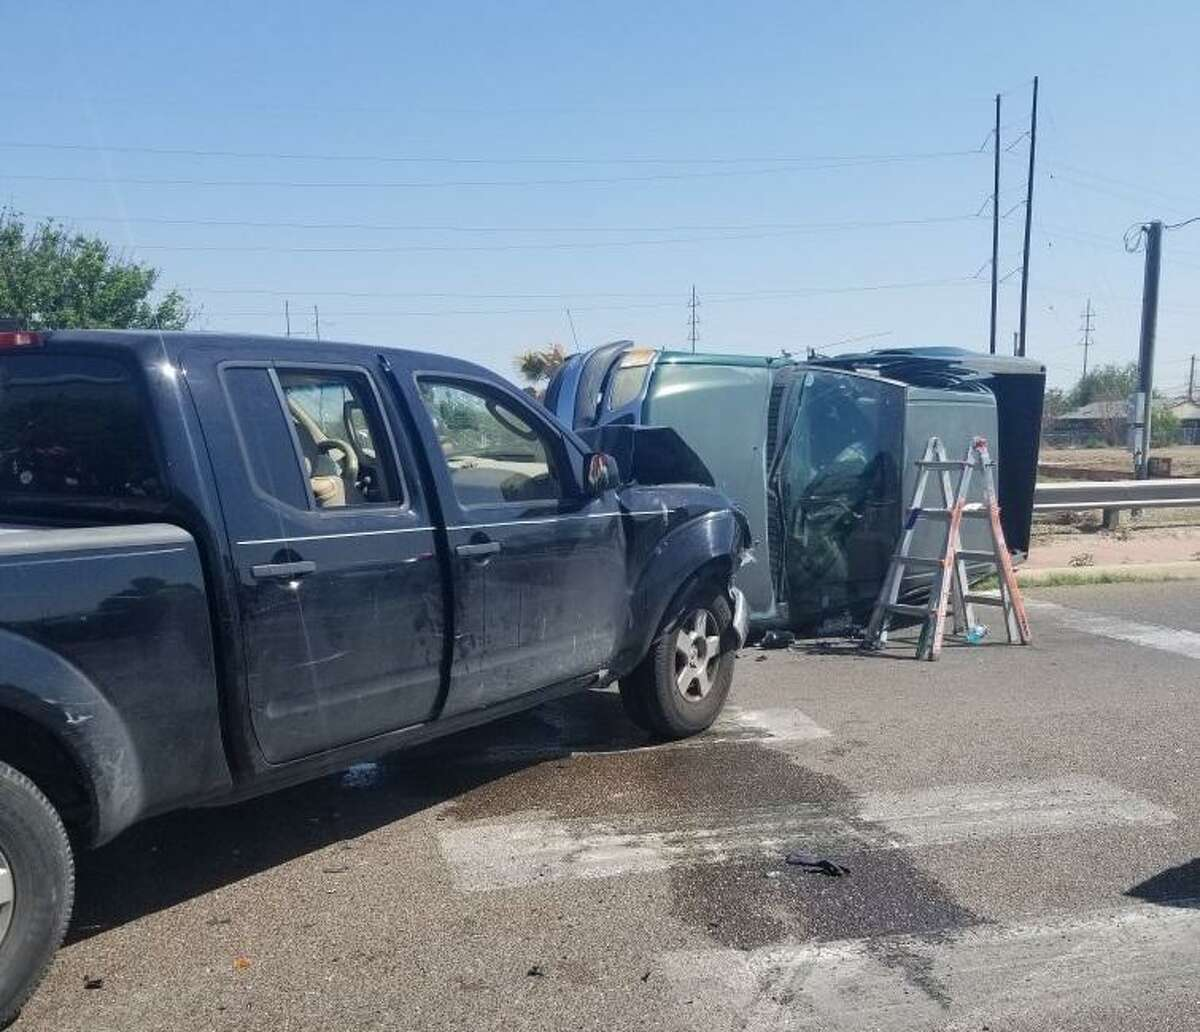 Two people were hurt as a result of this two-vehicle crash reported on Thursday morning in the intersection of San Francisco Avenue and Jefferson Street.